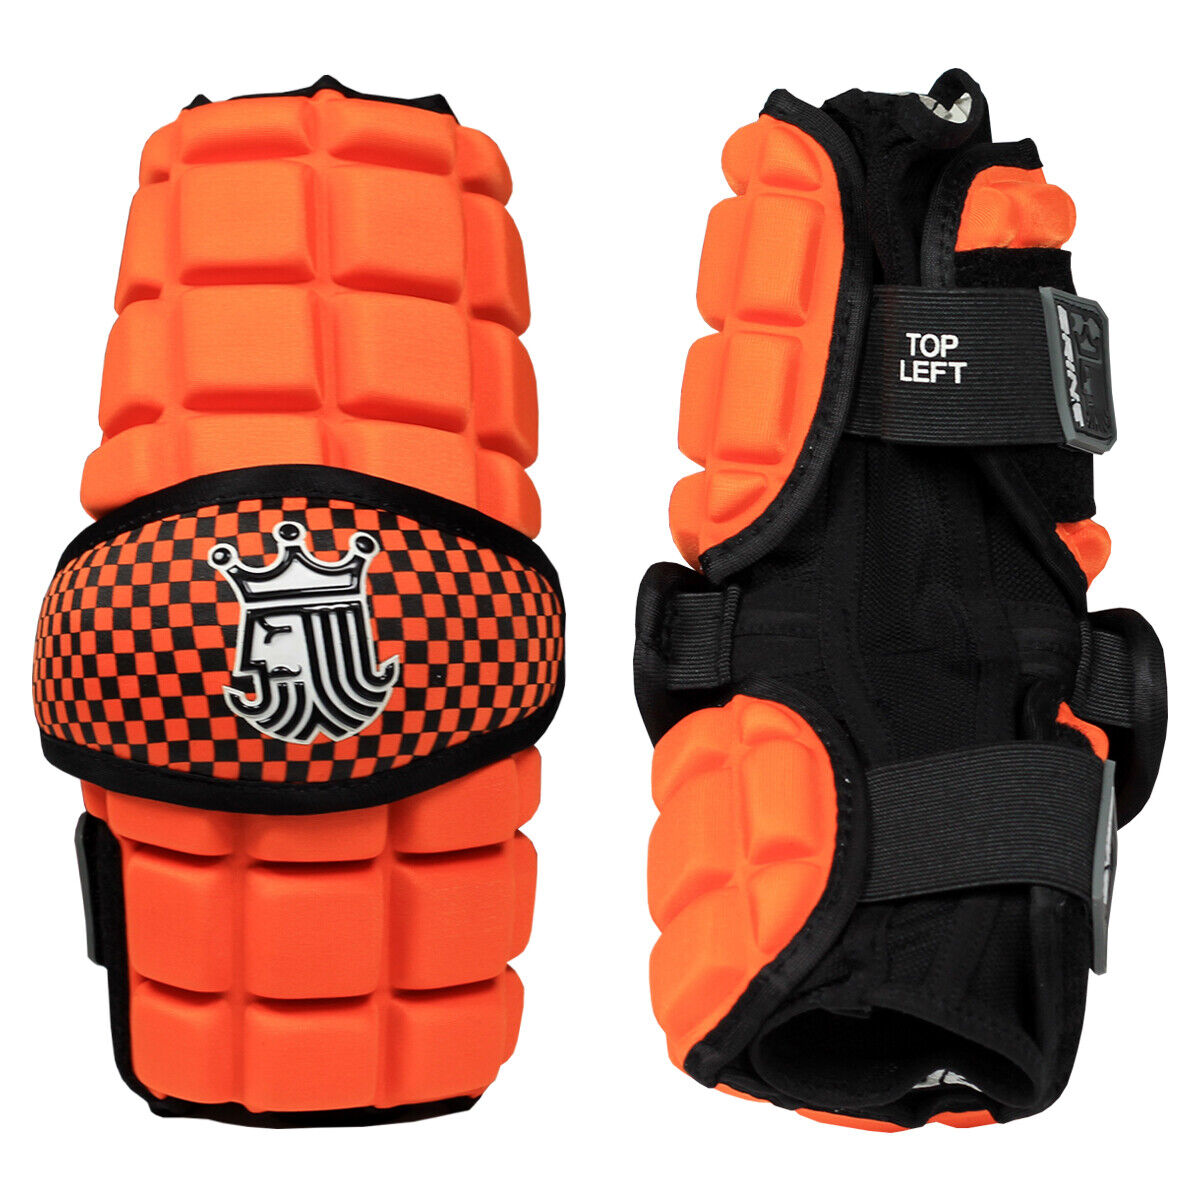 Brine Lopro Superlight Senior Lacrosse Arm Pads - Various colors (NEW) Lists@